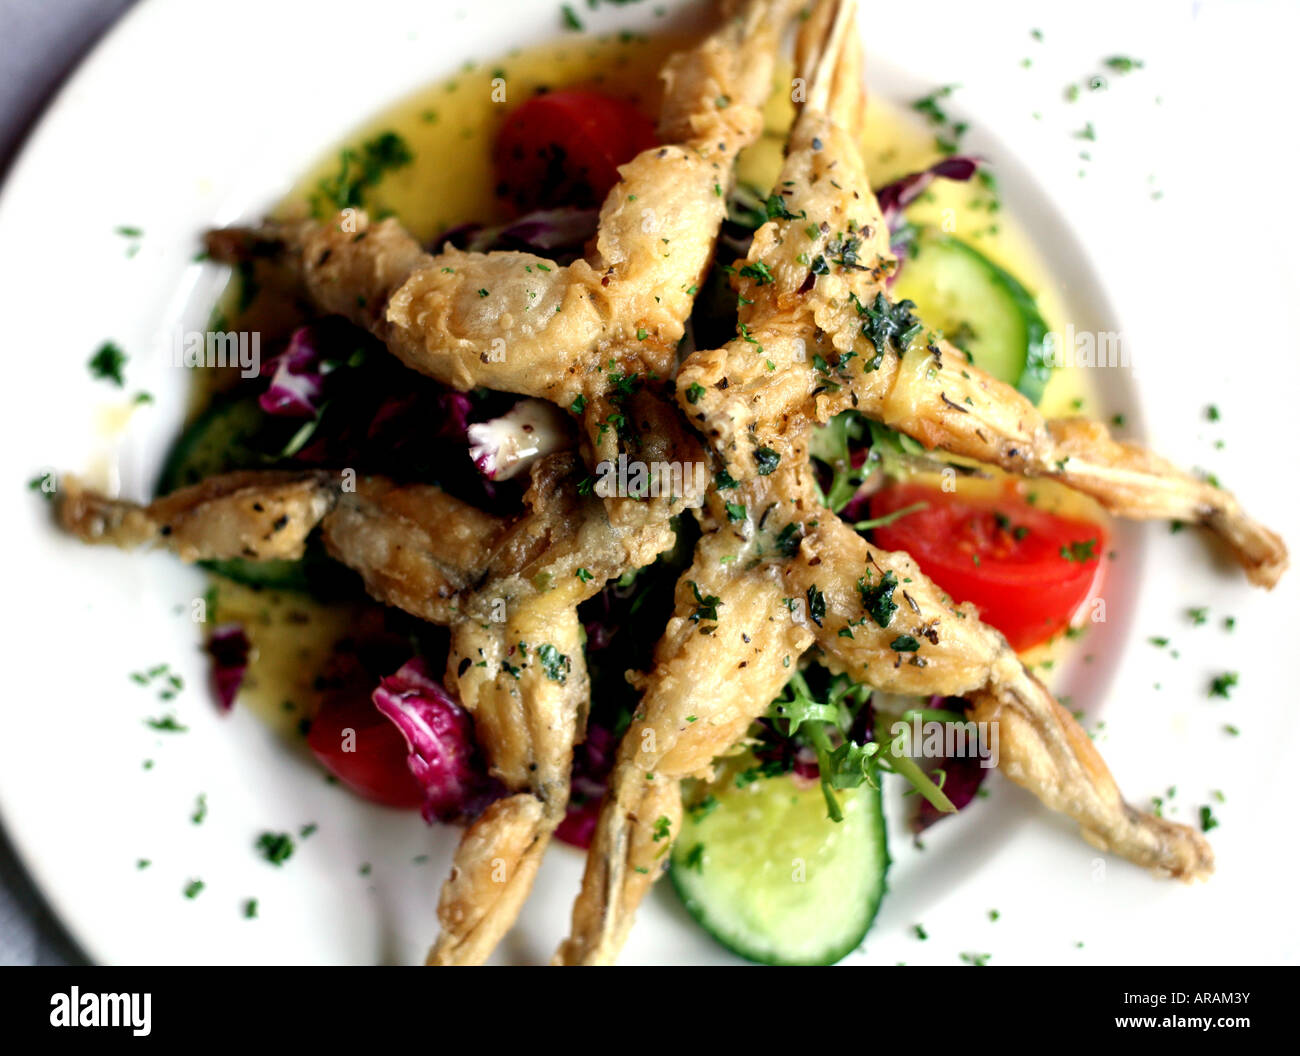 National dishes of France. Frog legs in French. French onion soup. Croissants. Baguette 92